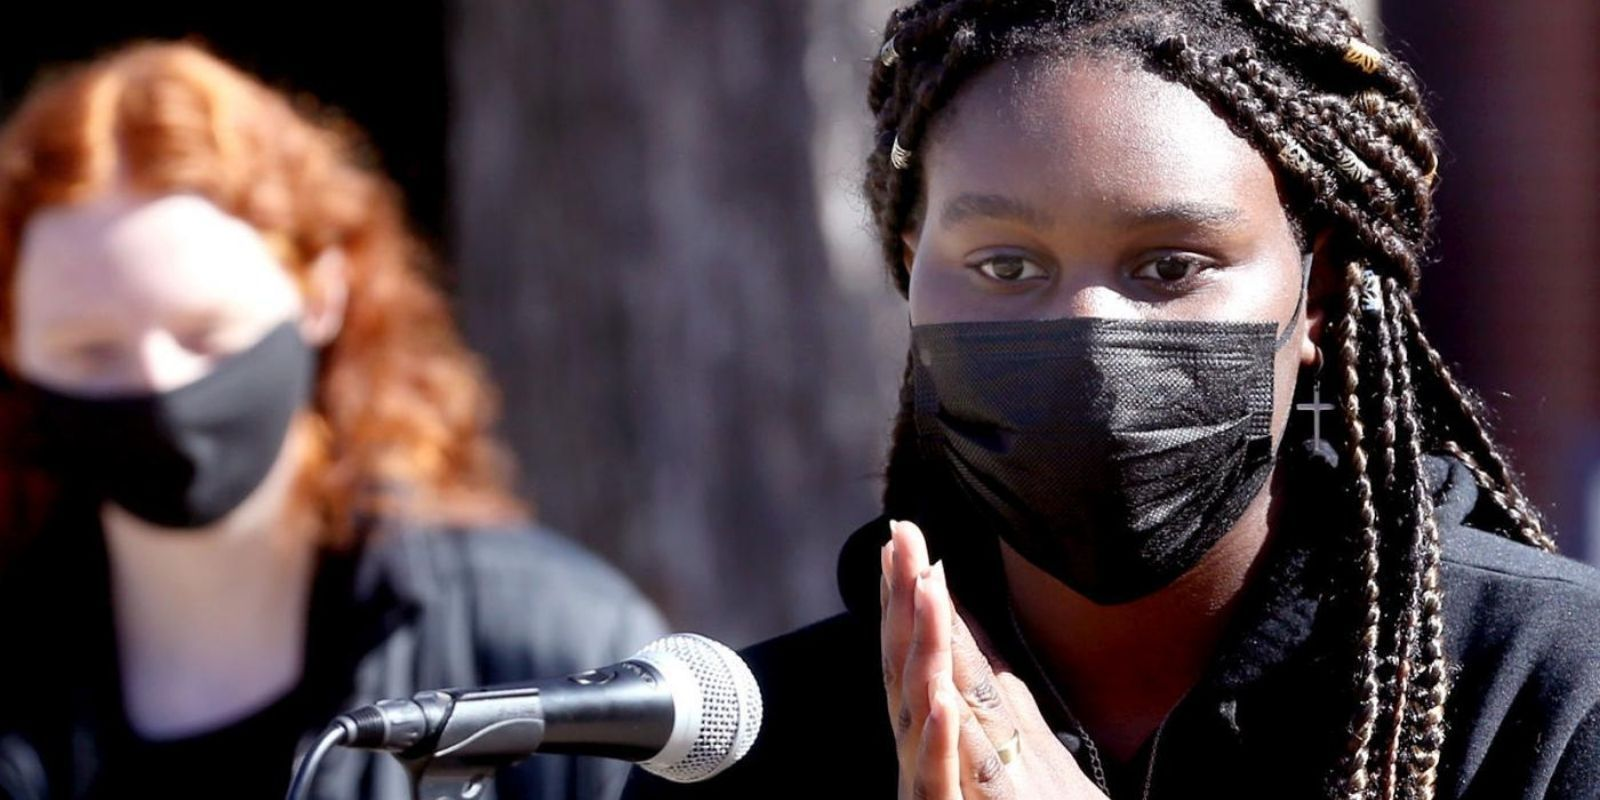 HATE HOAX: BLM activist claimed she was the victim of hate crimes including arson—video shows she started the fire